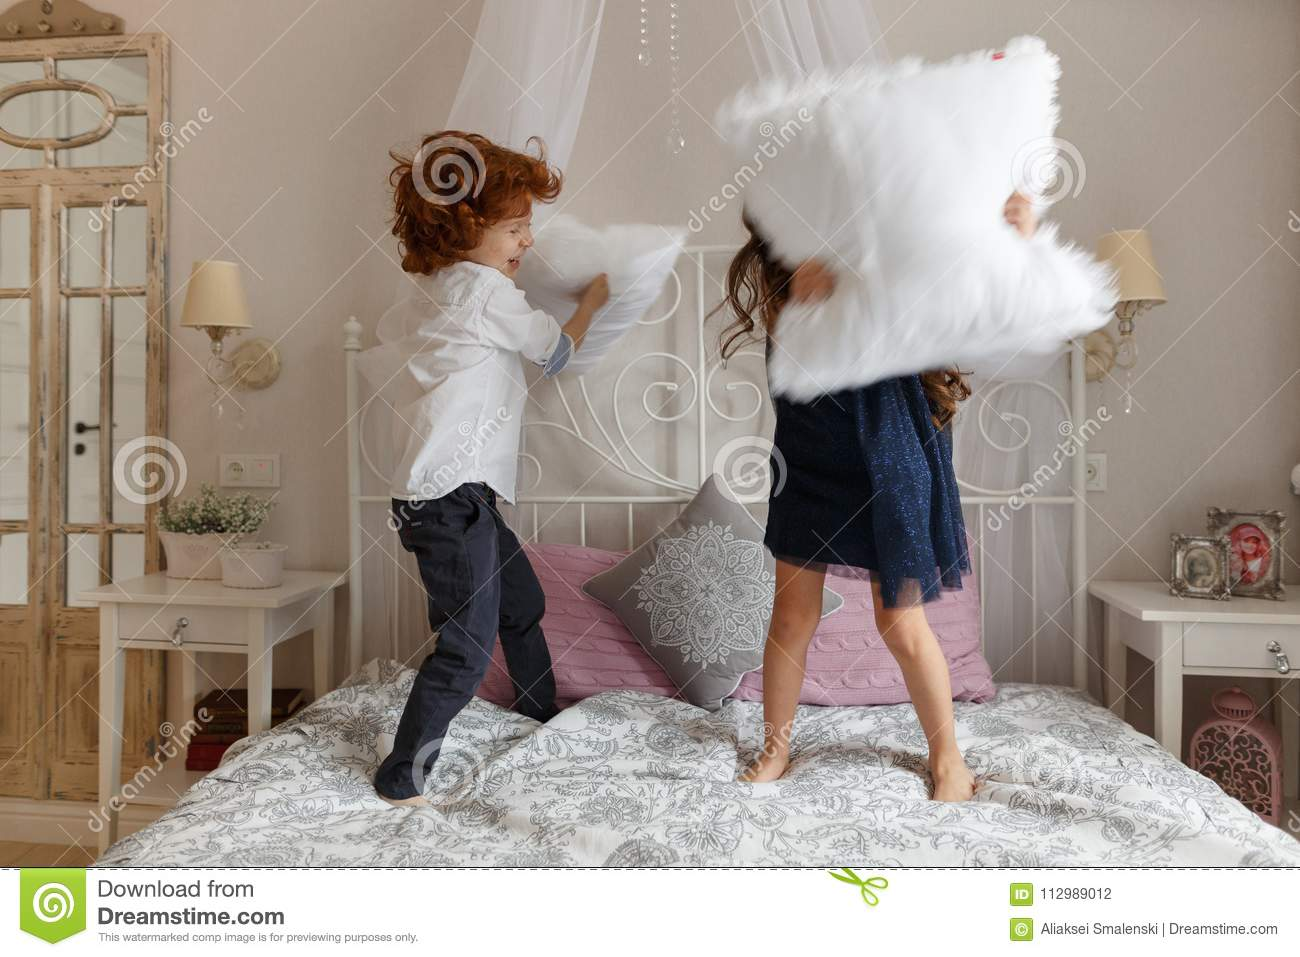 Little children, boy and girl fighting with pillows